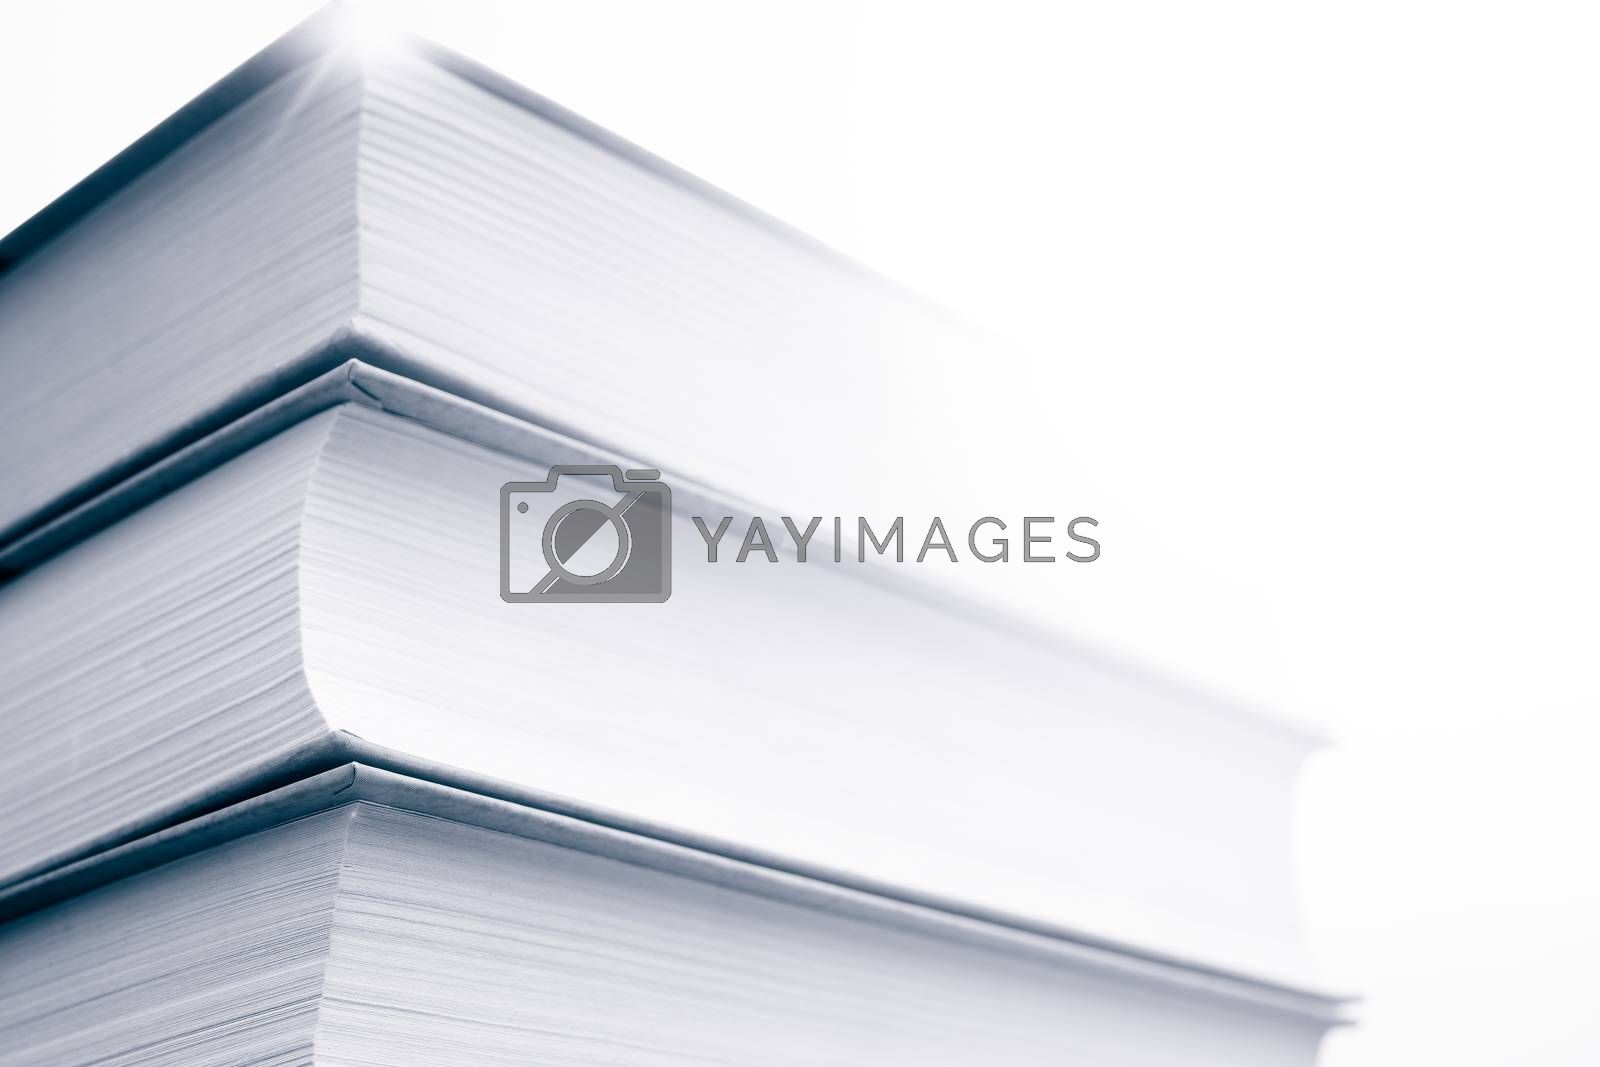 Thick paper books are a symbol of education and wisdom. A stack of books on the table. Storage and dissemination of information.